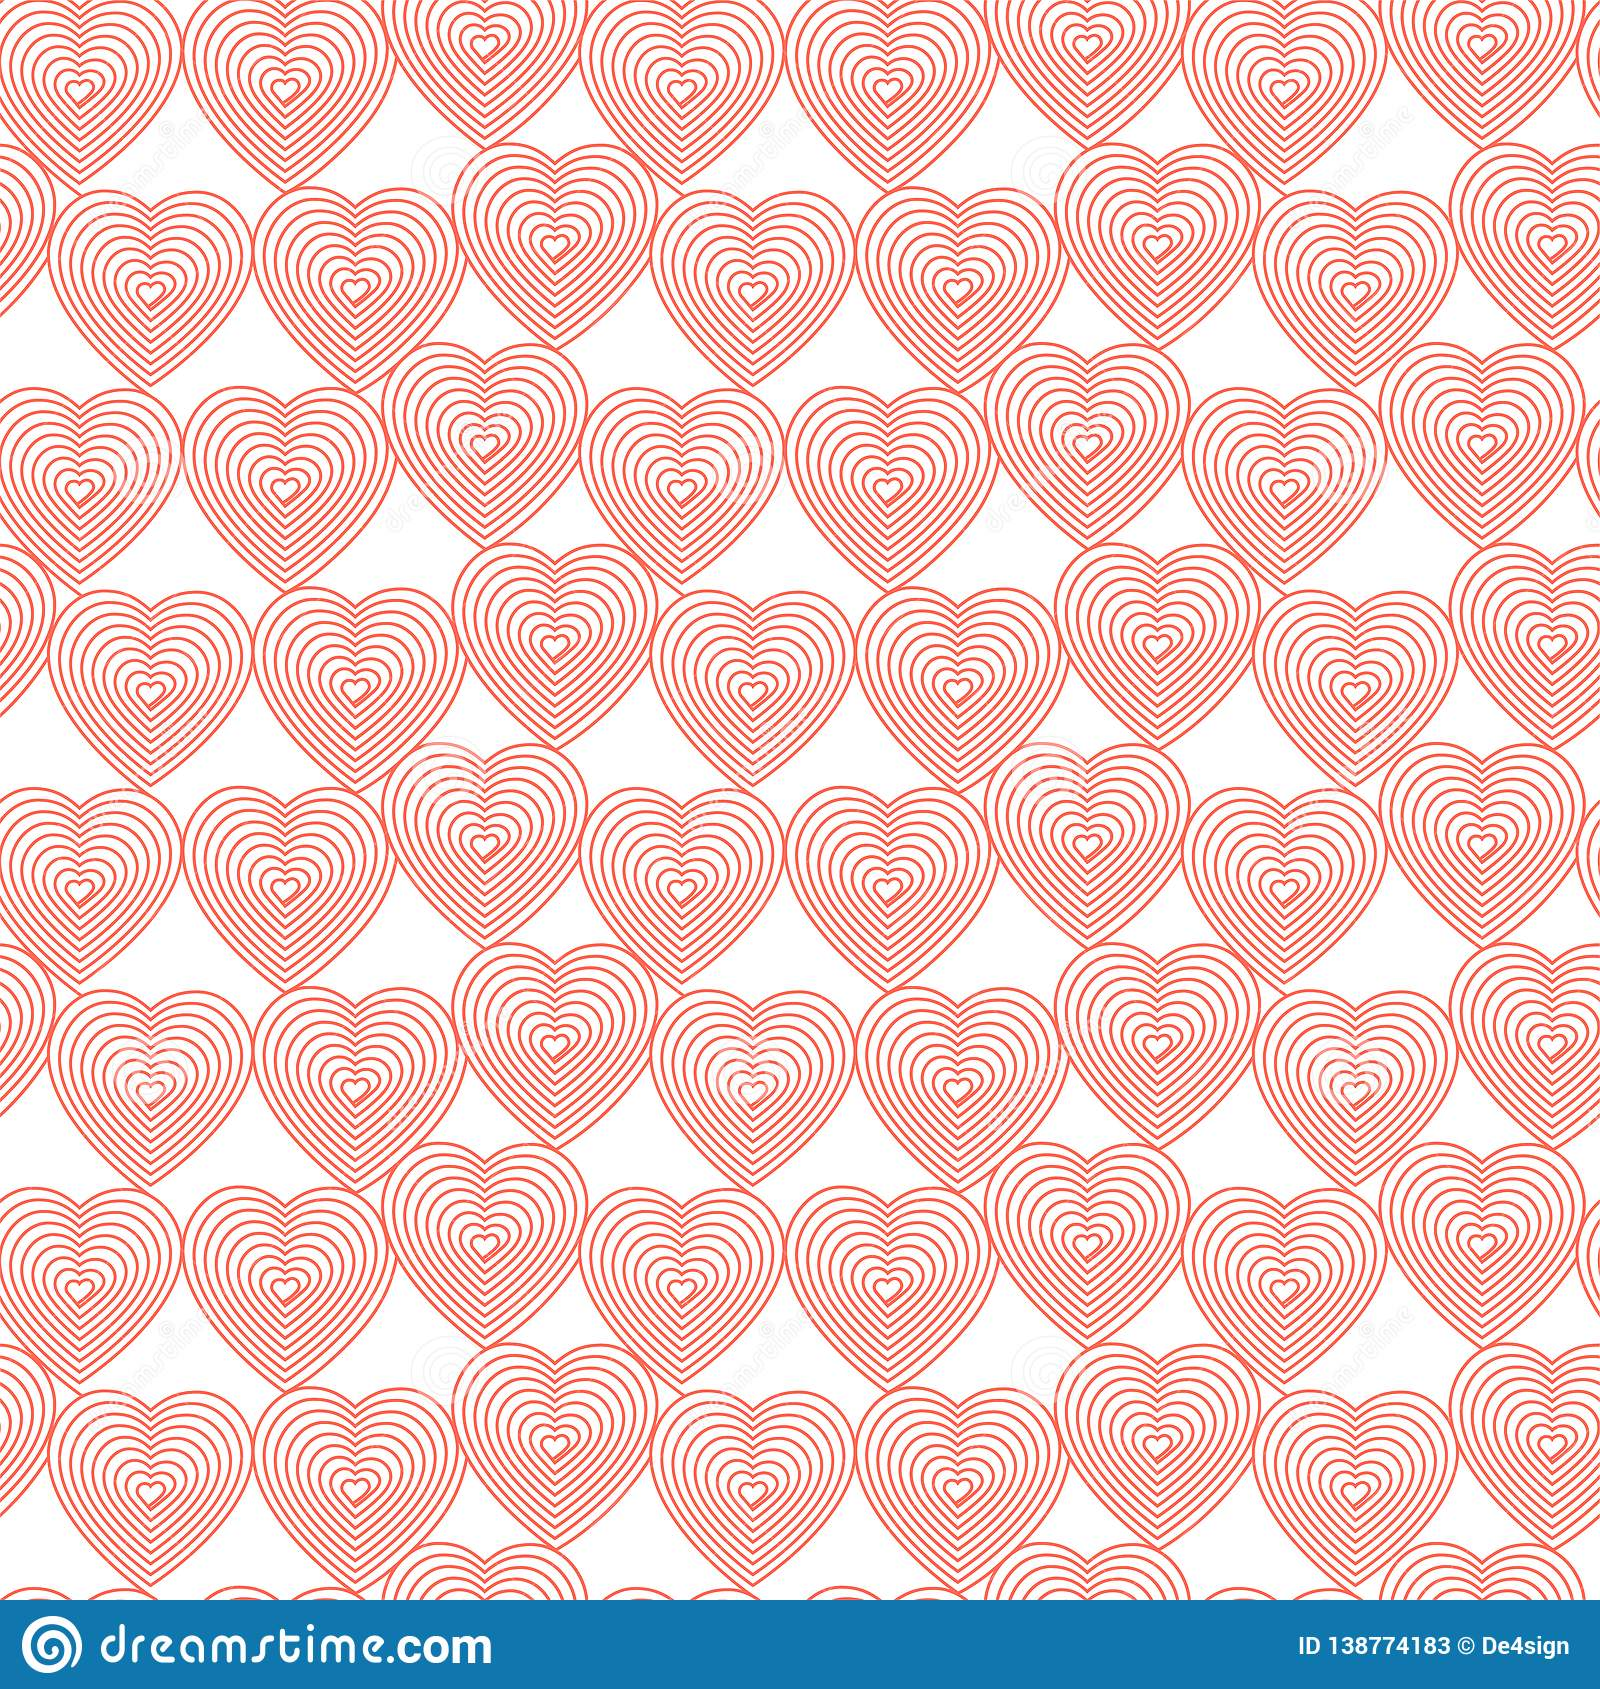 Coral hearts on the white background. Hearts in abstract linear style_Vector seamless pattern.